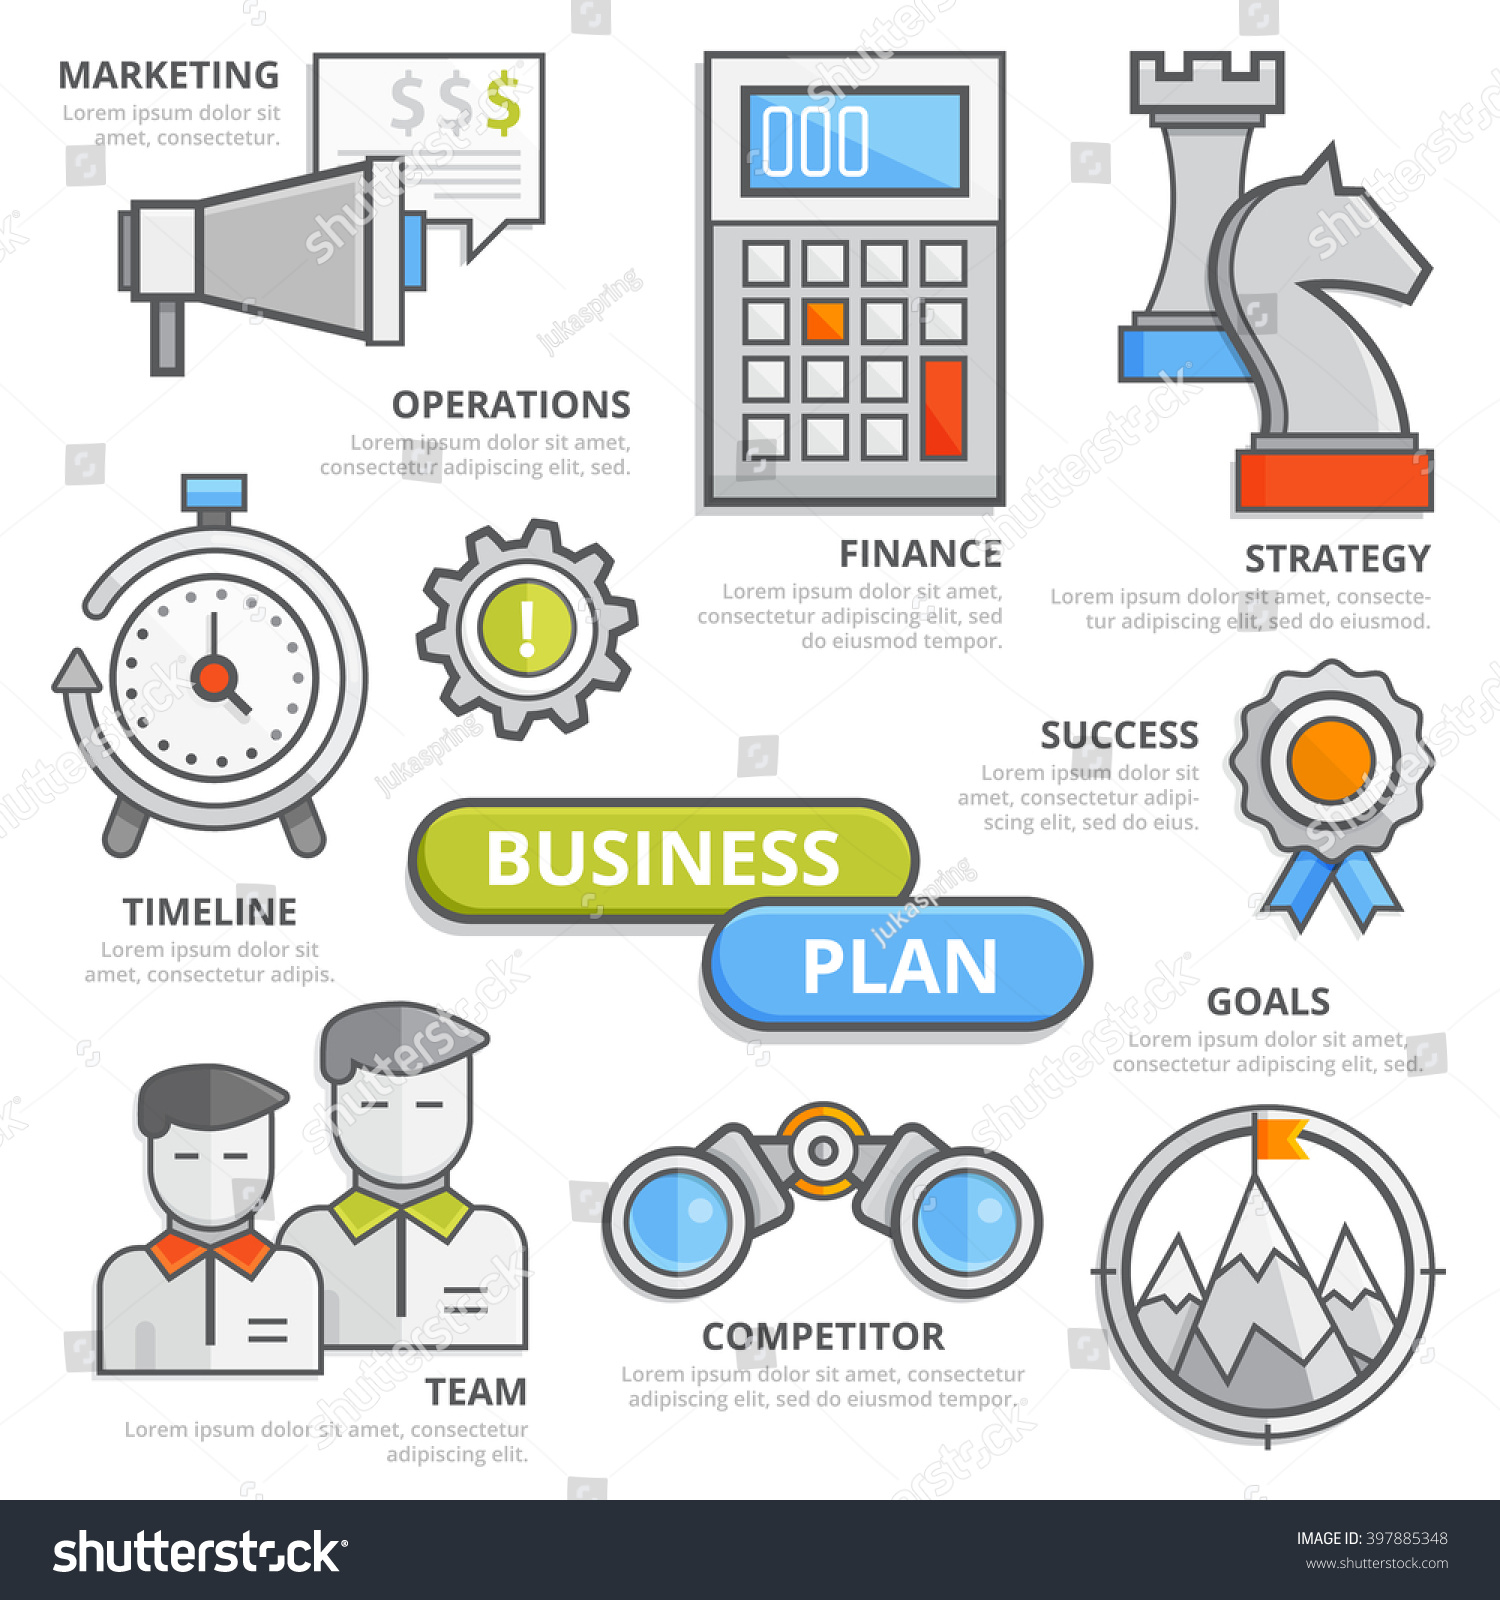 Flat Line Business Plan Concept, Marketing, Operations